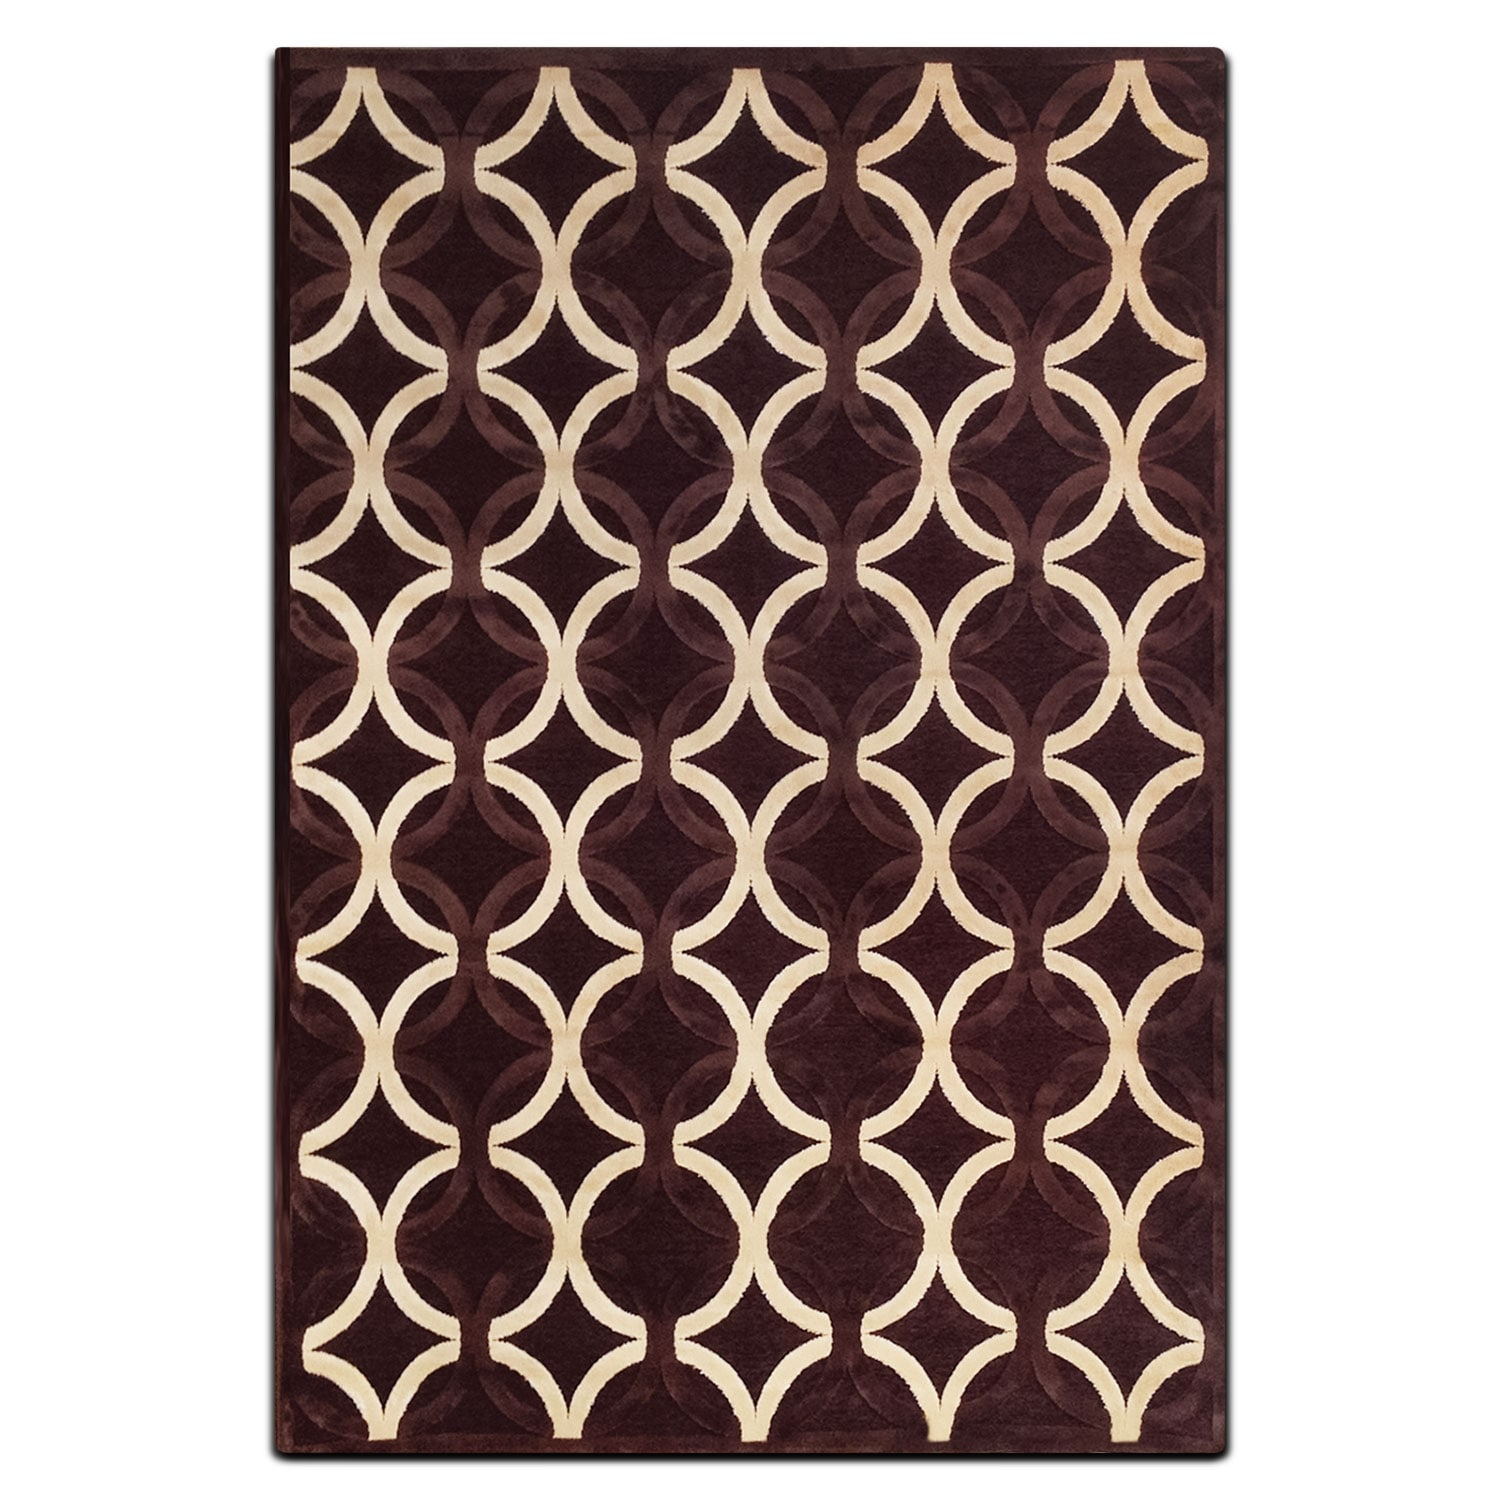 Rugs - Napa 5' x 8' Area Rug - Chocolate and Ivory